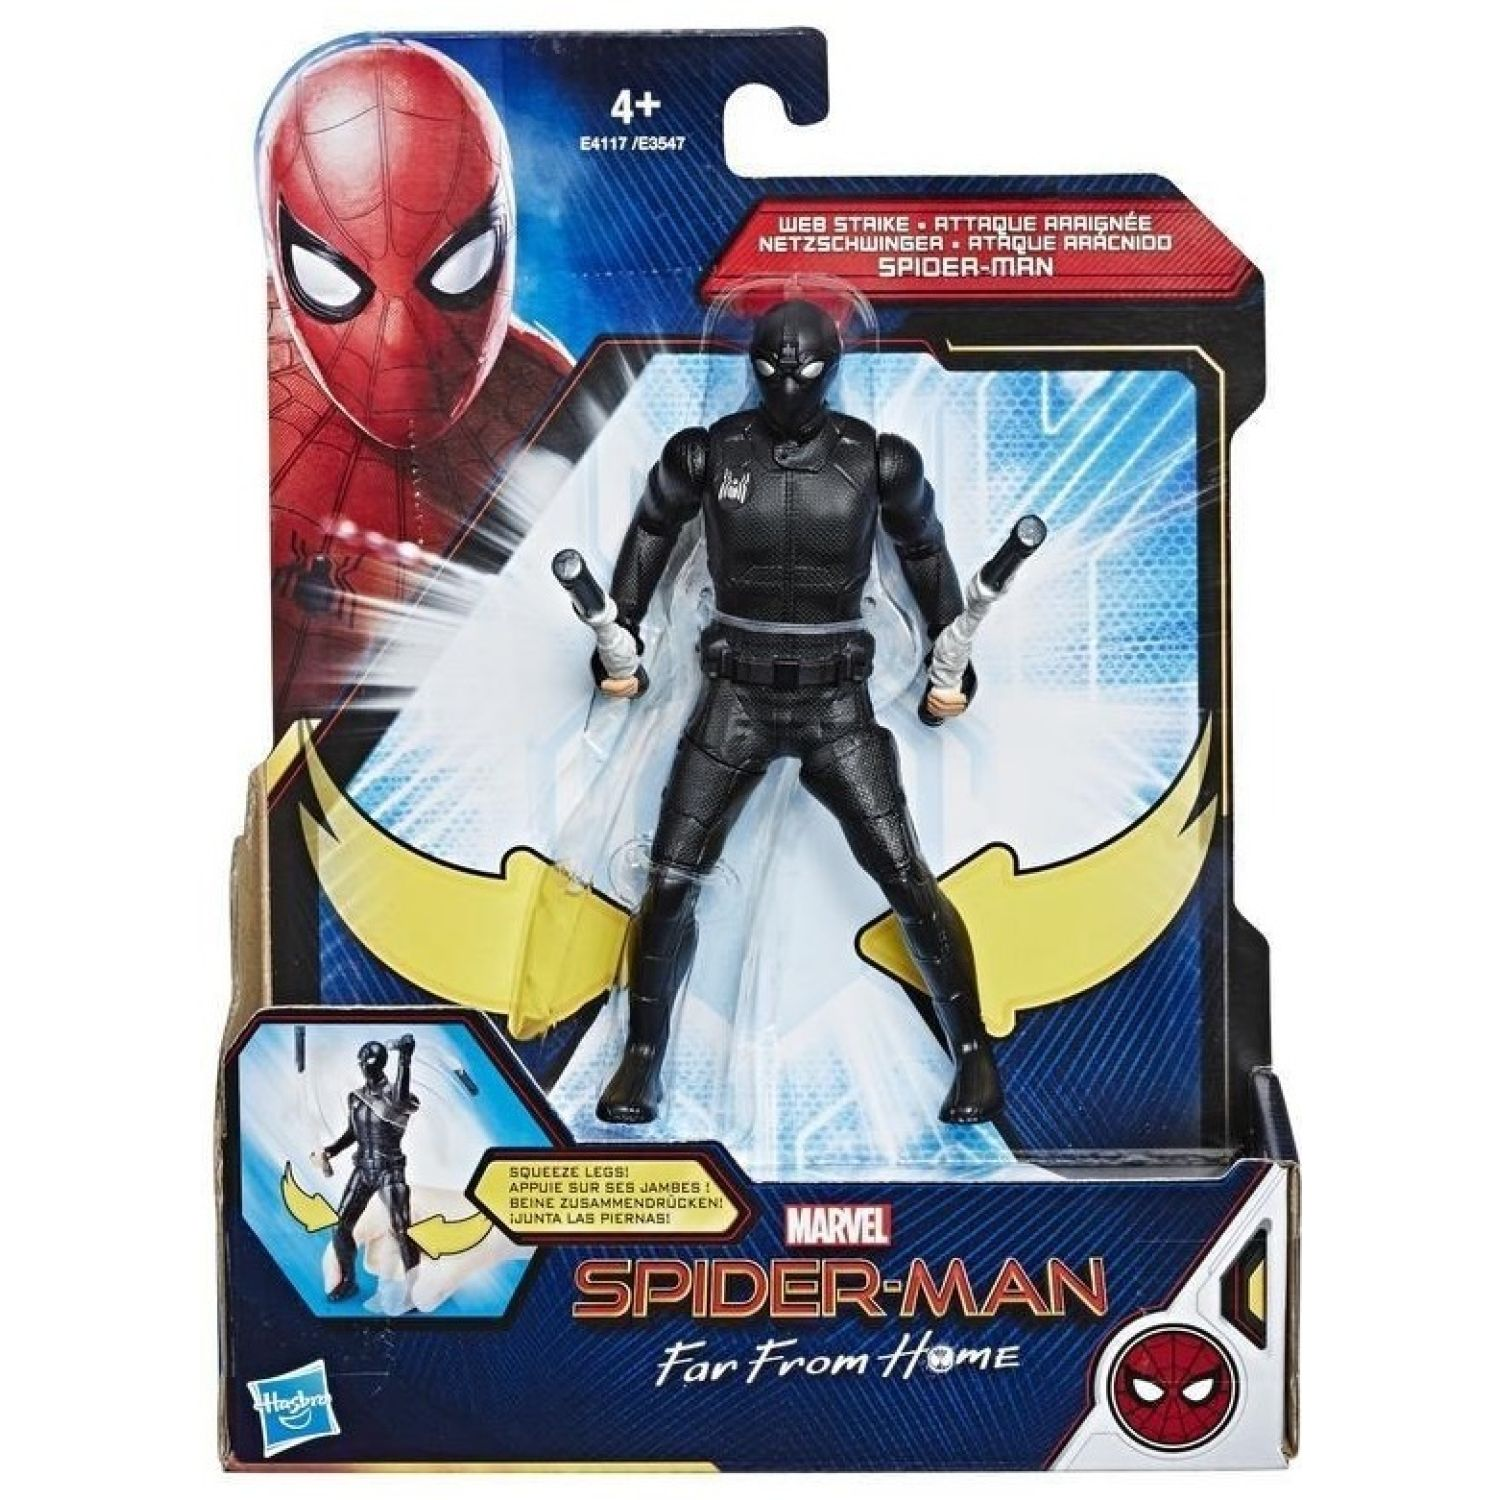 SPIDER-MAN spd ffh 6in web strike spd Varios Figuras de acción